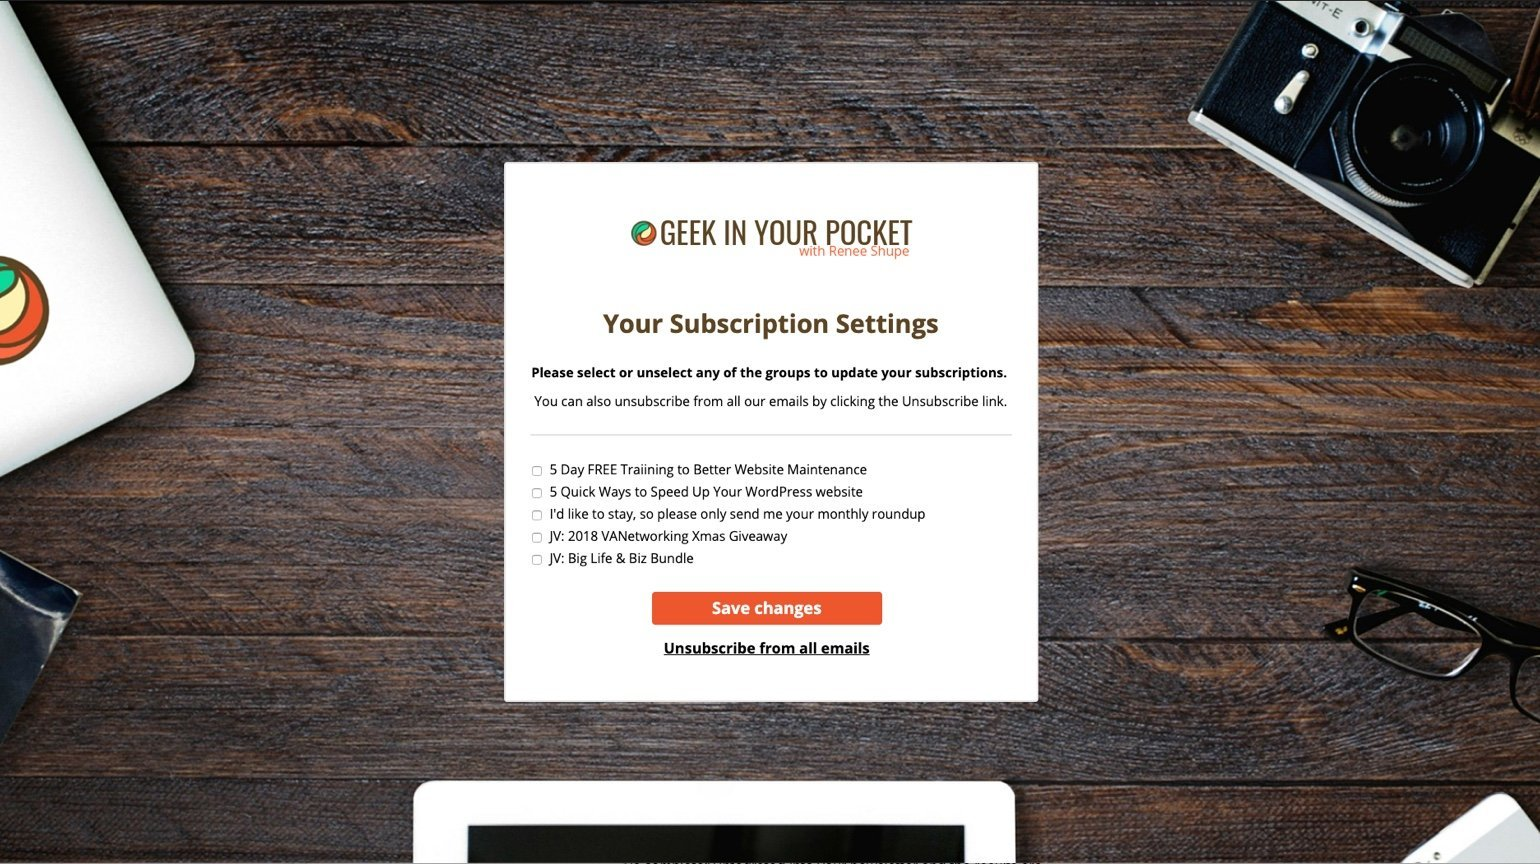 Geek in your pocket unsubscribe page example